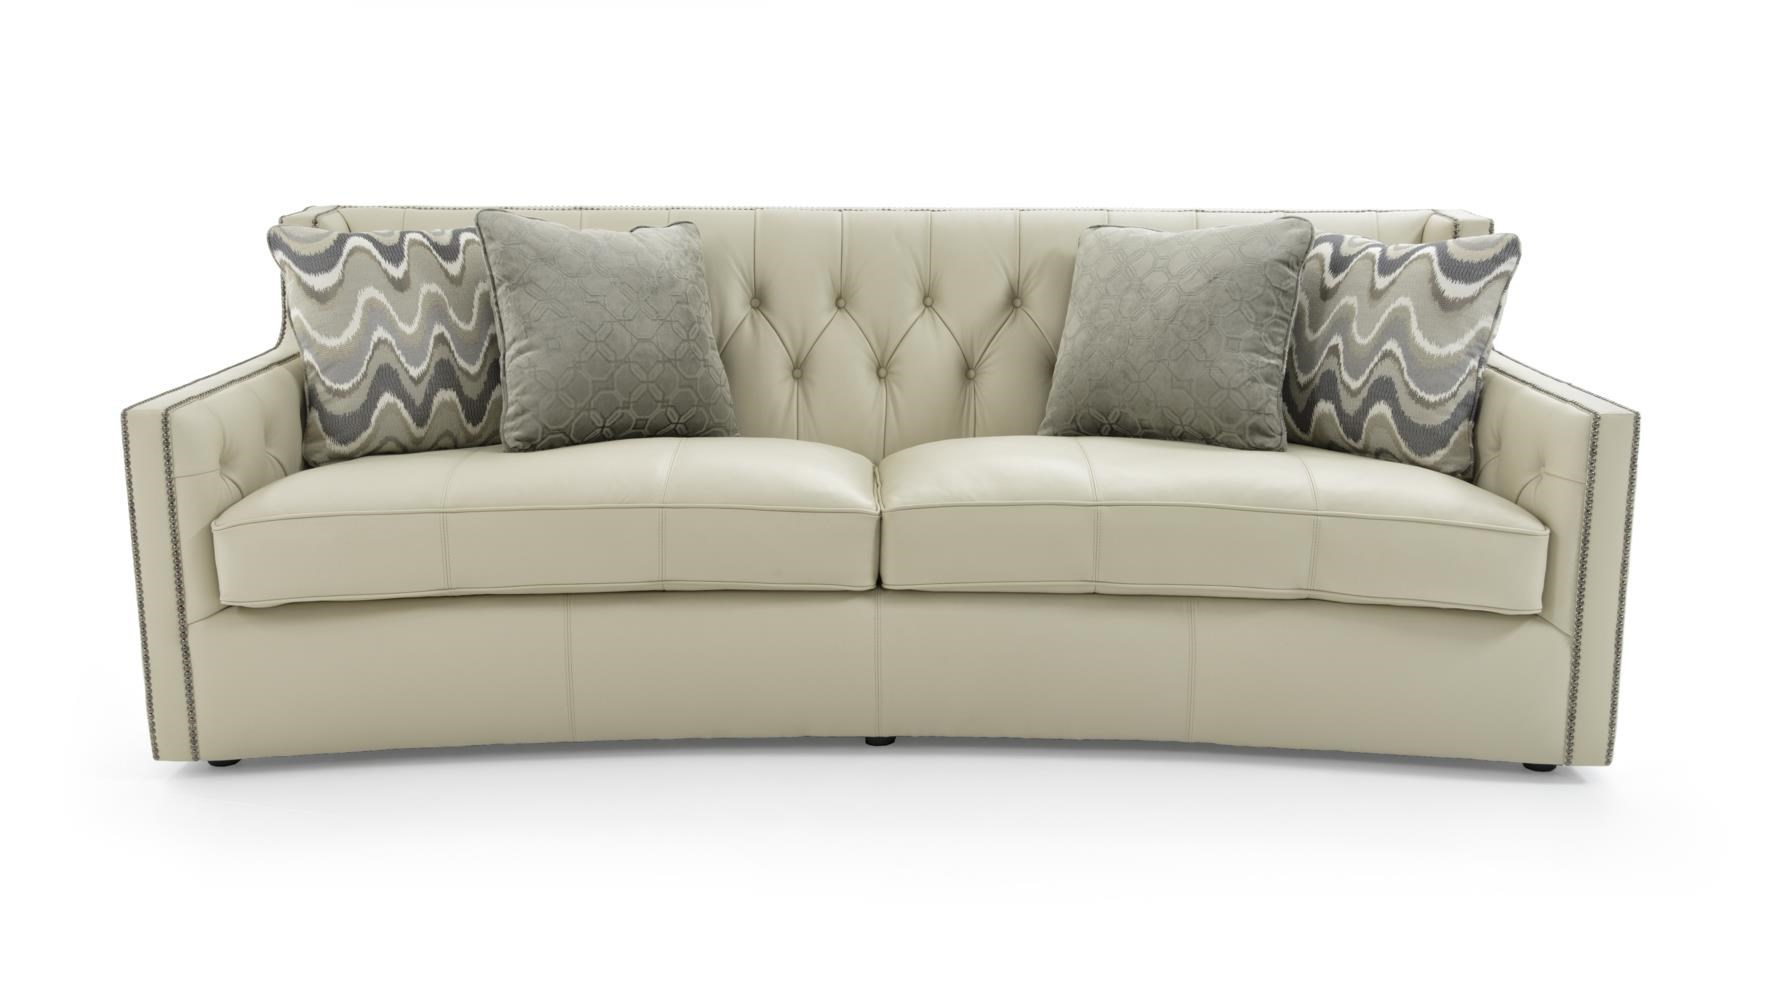 Bernhardt candace 7277leo 206 200 sofa with transitional for Bernhardt furniture